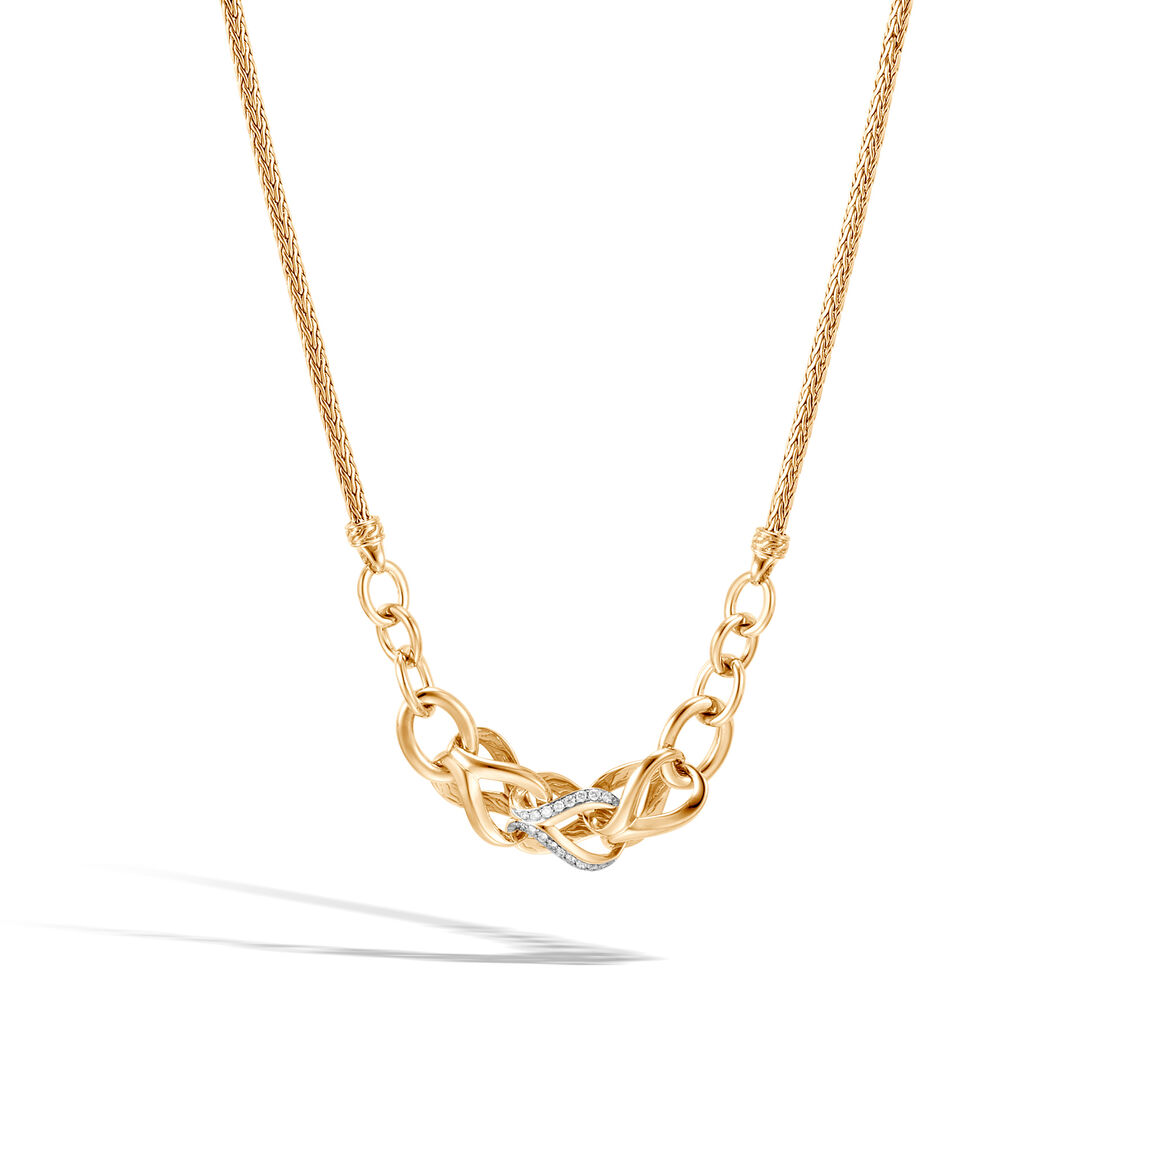 Asli Classic Chain Link Station Necklace in 18K Gold with Dia